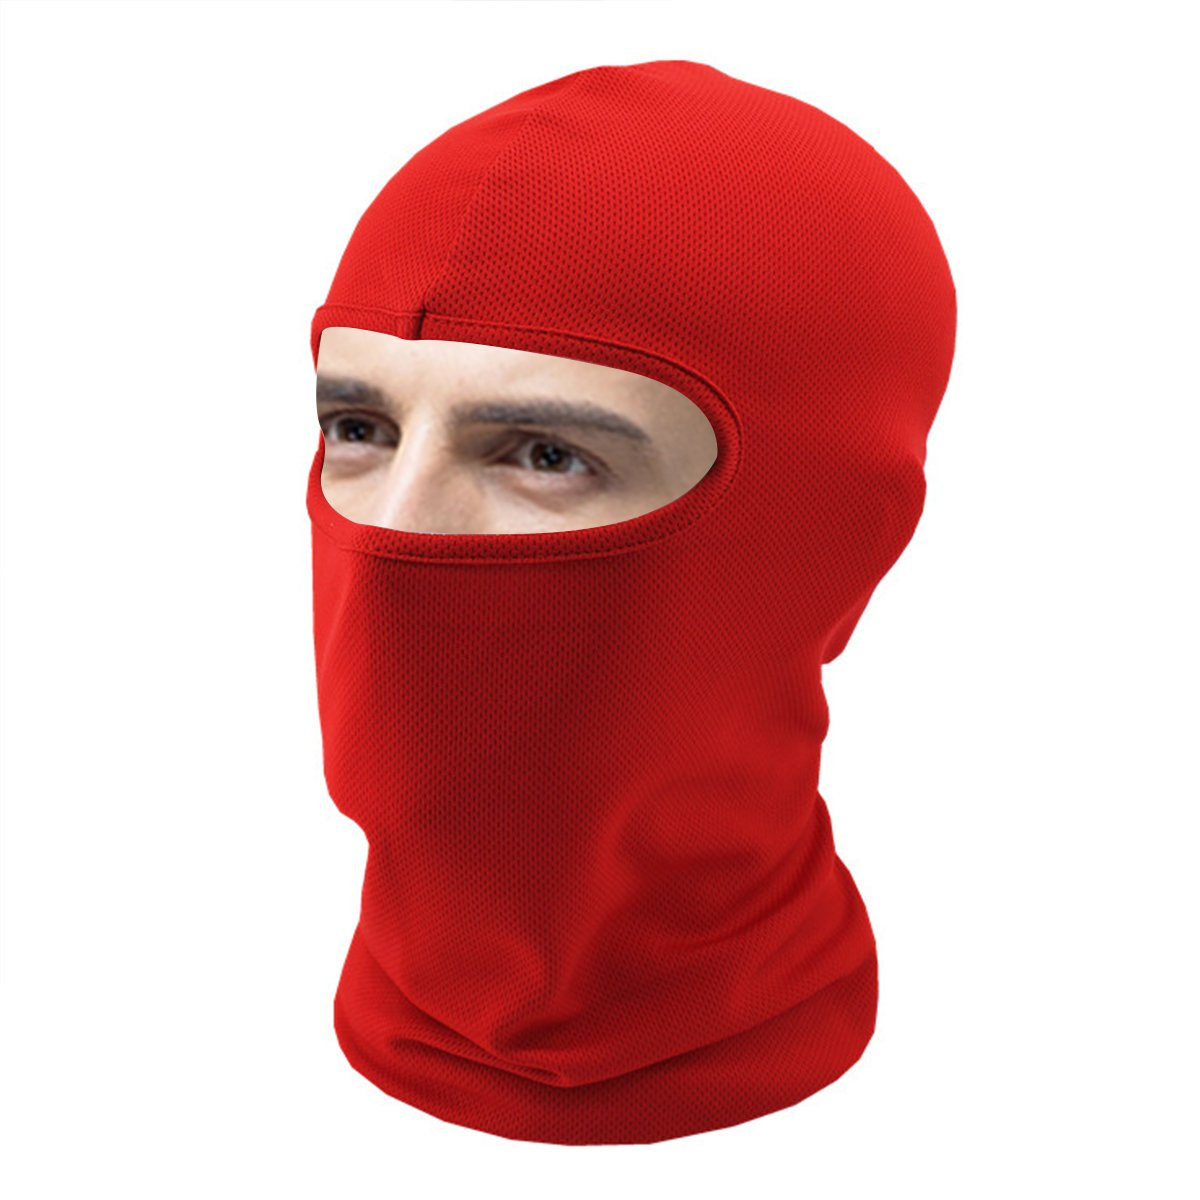 AUTULET Breath Absorb Sweat Summer Thin Face Mask for Running Cycling Fishing Neck Scarf Sunscreen Hat